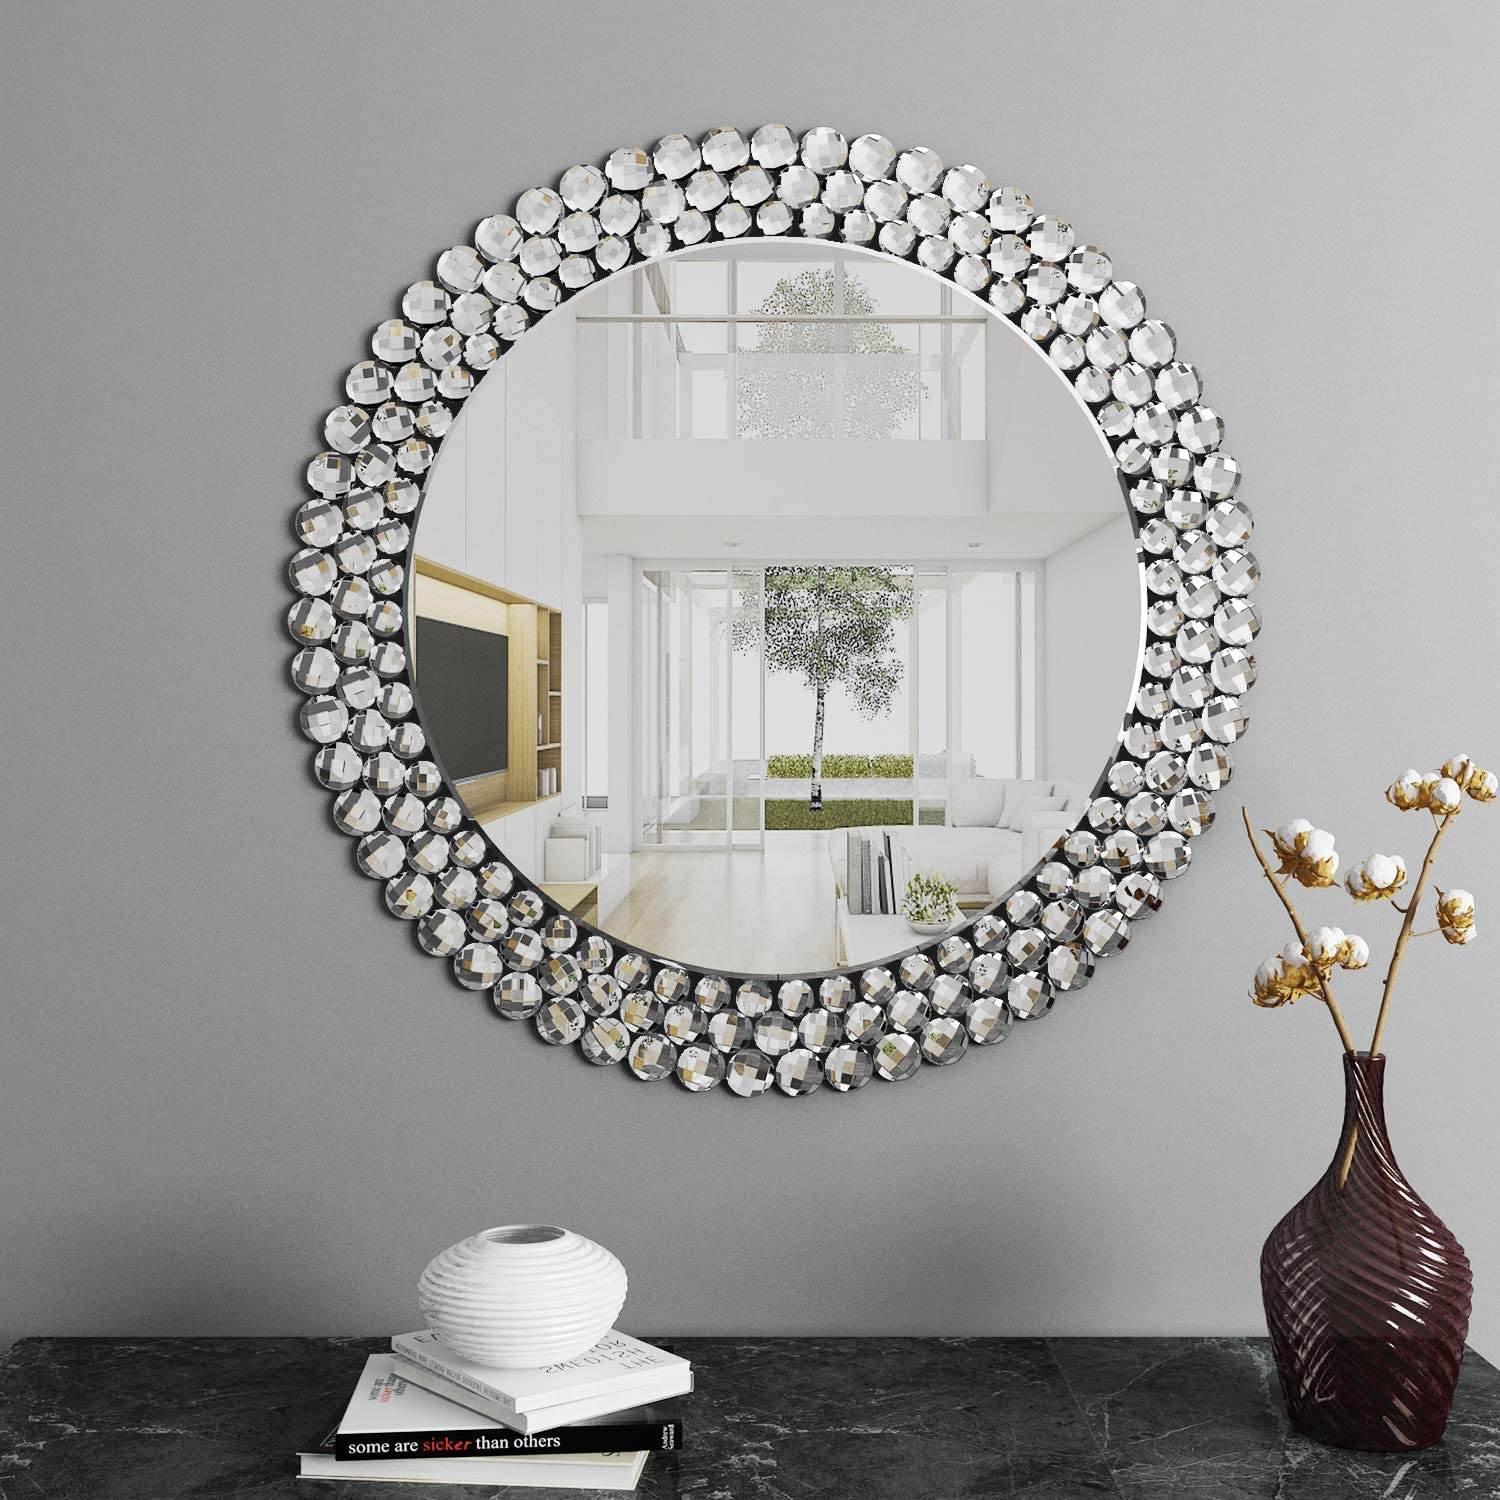 Luxury Round Wall Mirror Decorative - Circle Wall Mirror for Bedroom Livingroom: Furniture & Decor